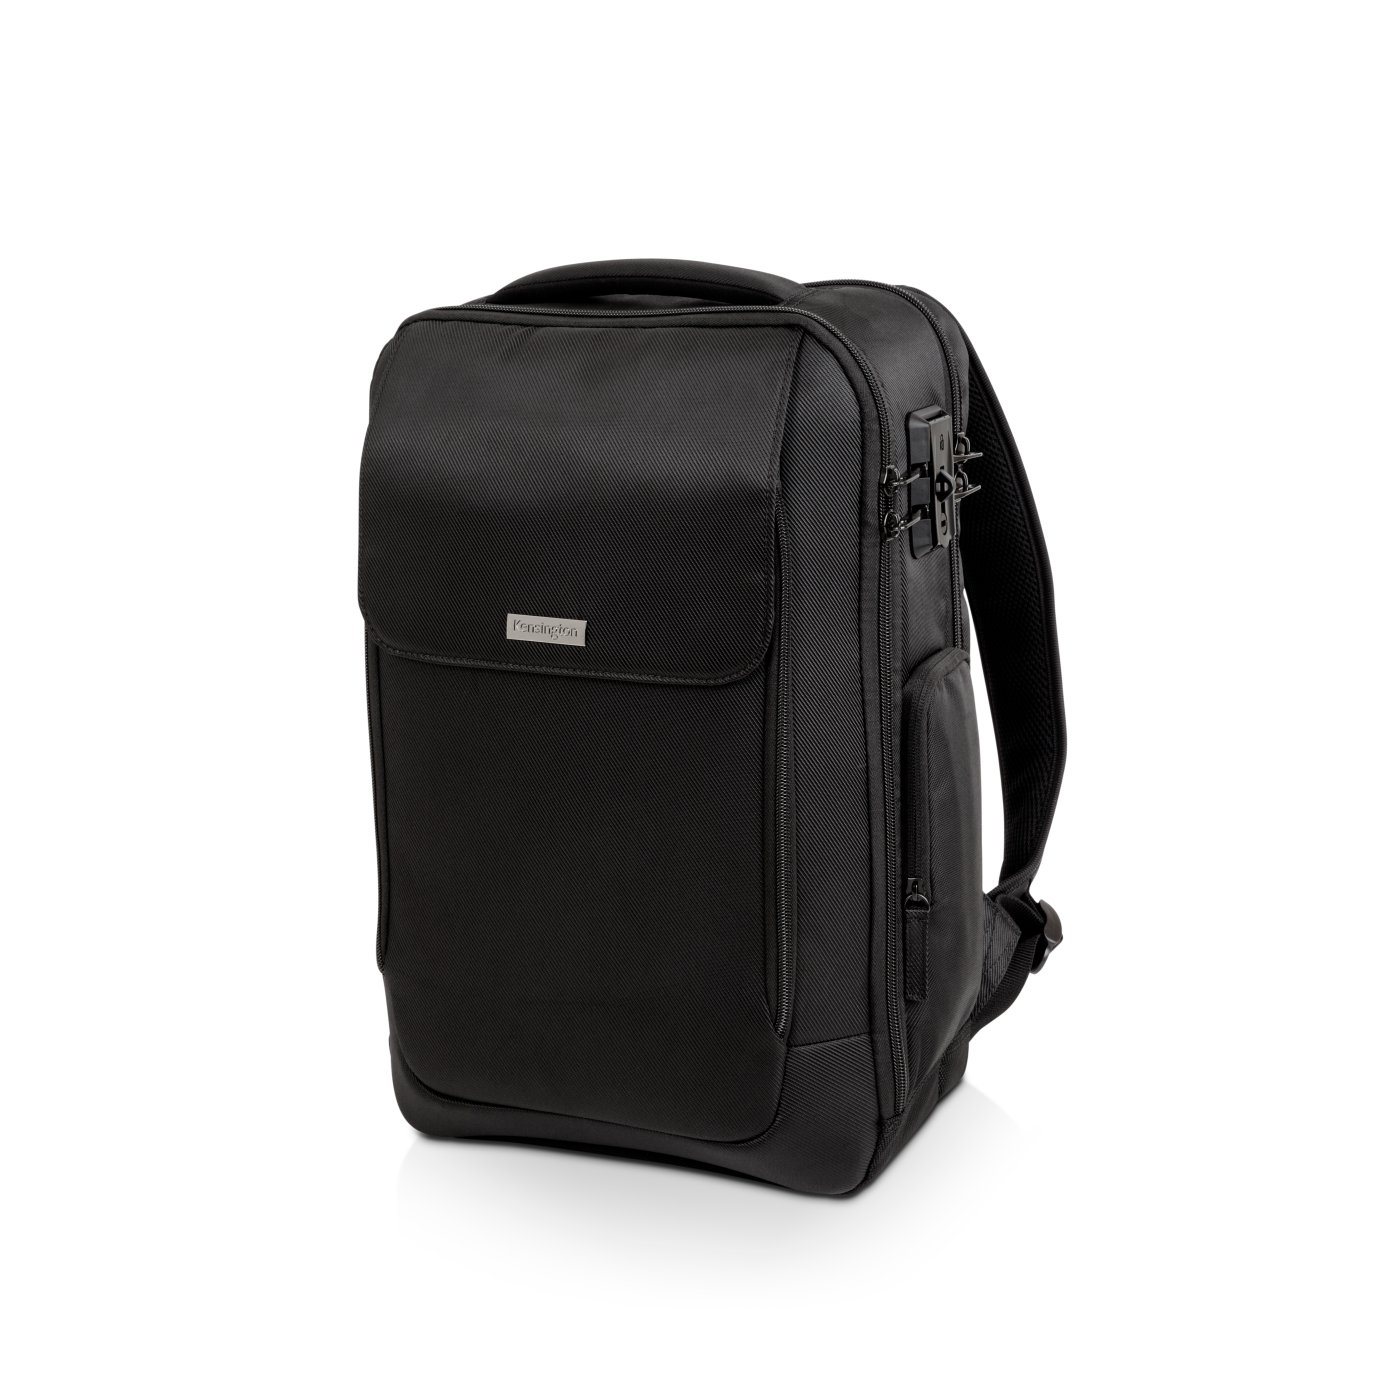 Kensington - Products - Laptop Bags - Backpacks - SecureTrek™ 15 ...